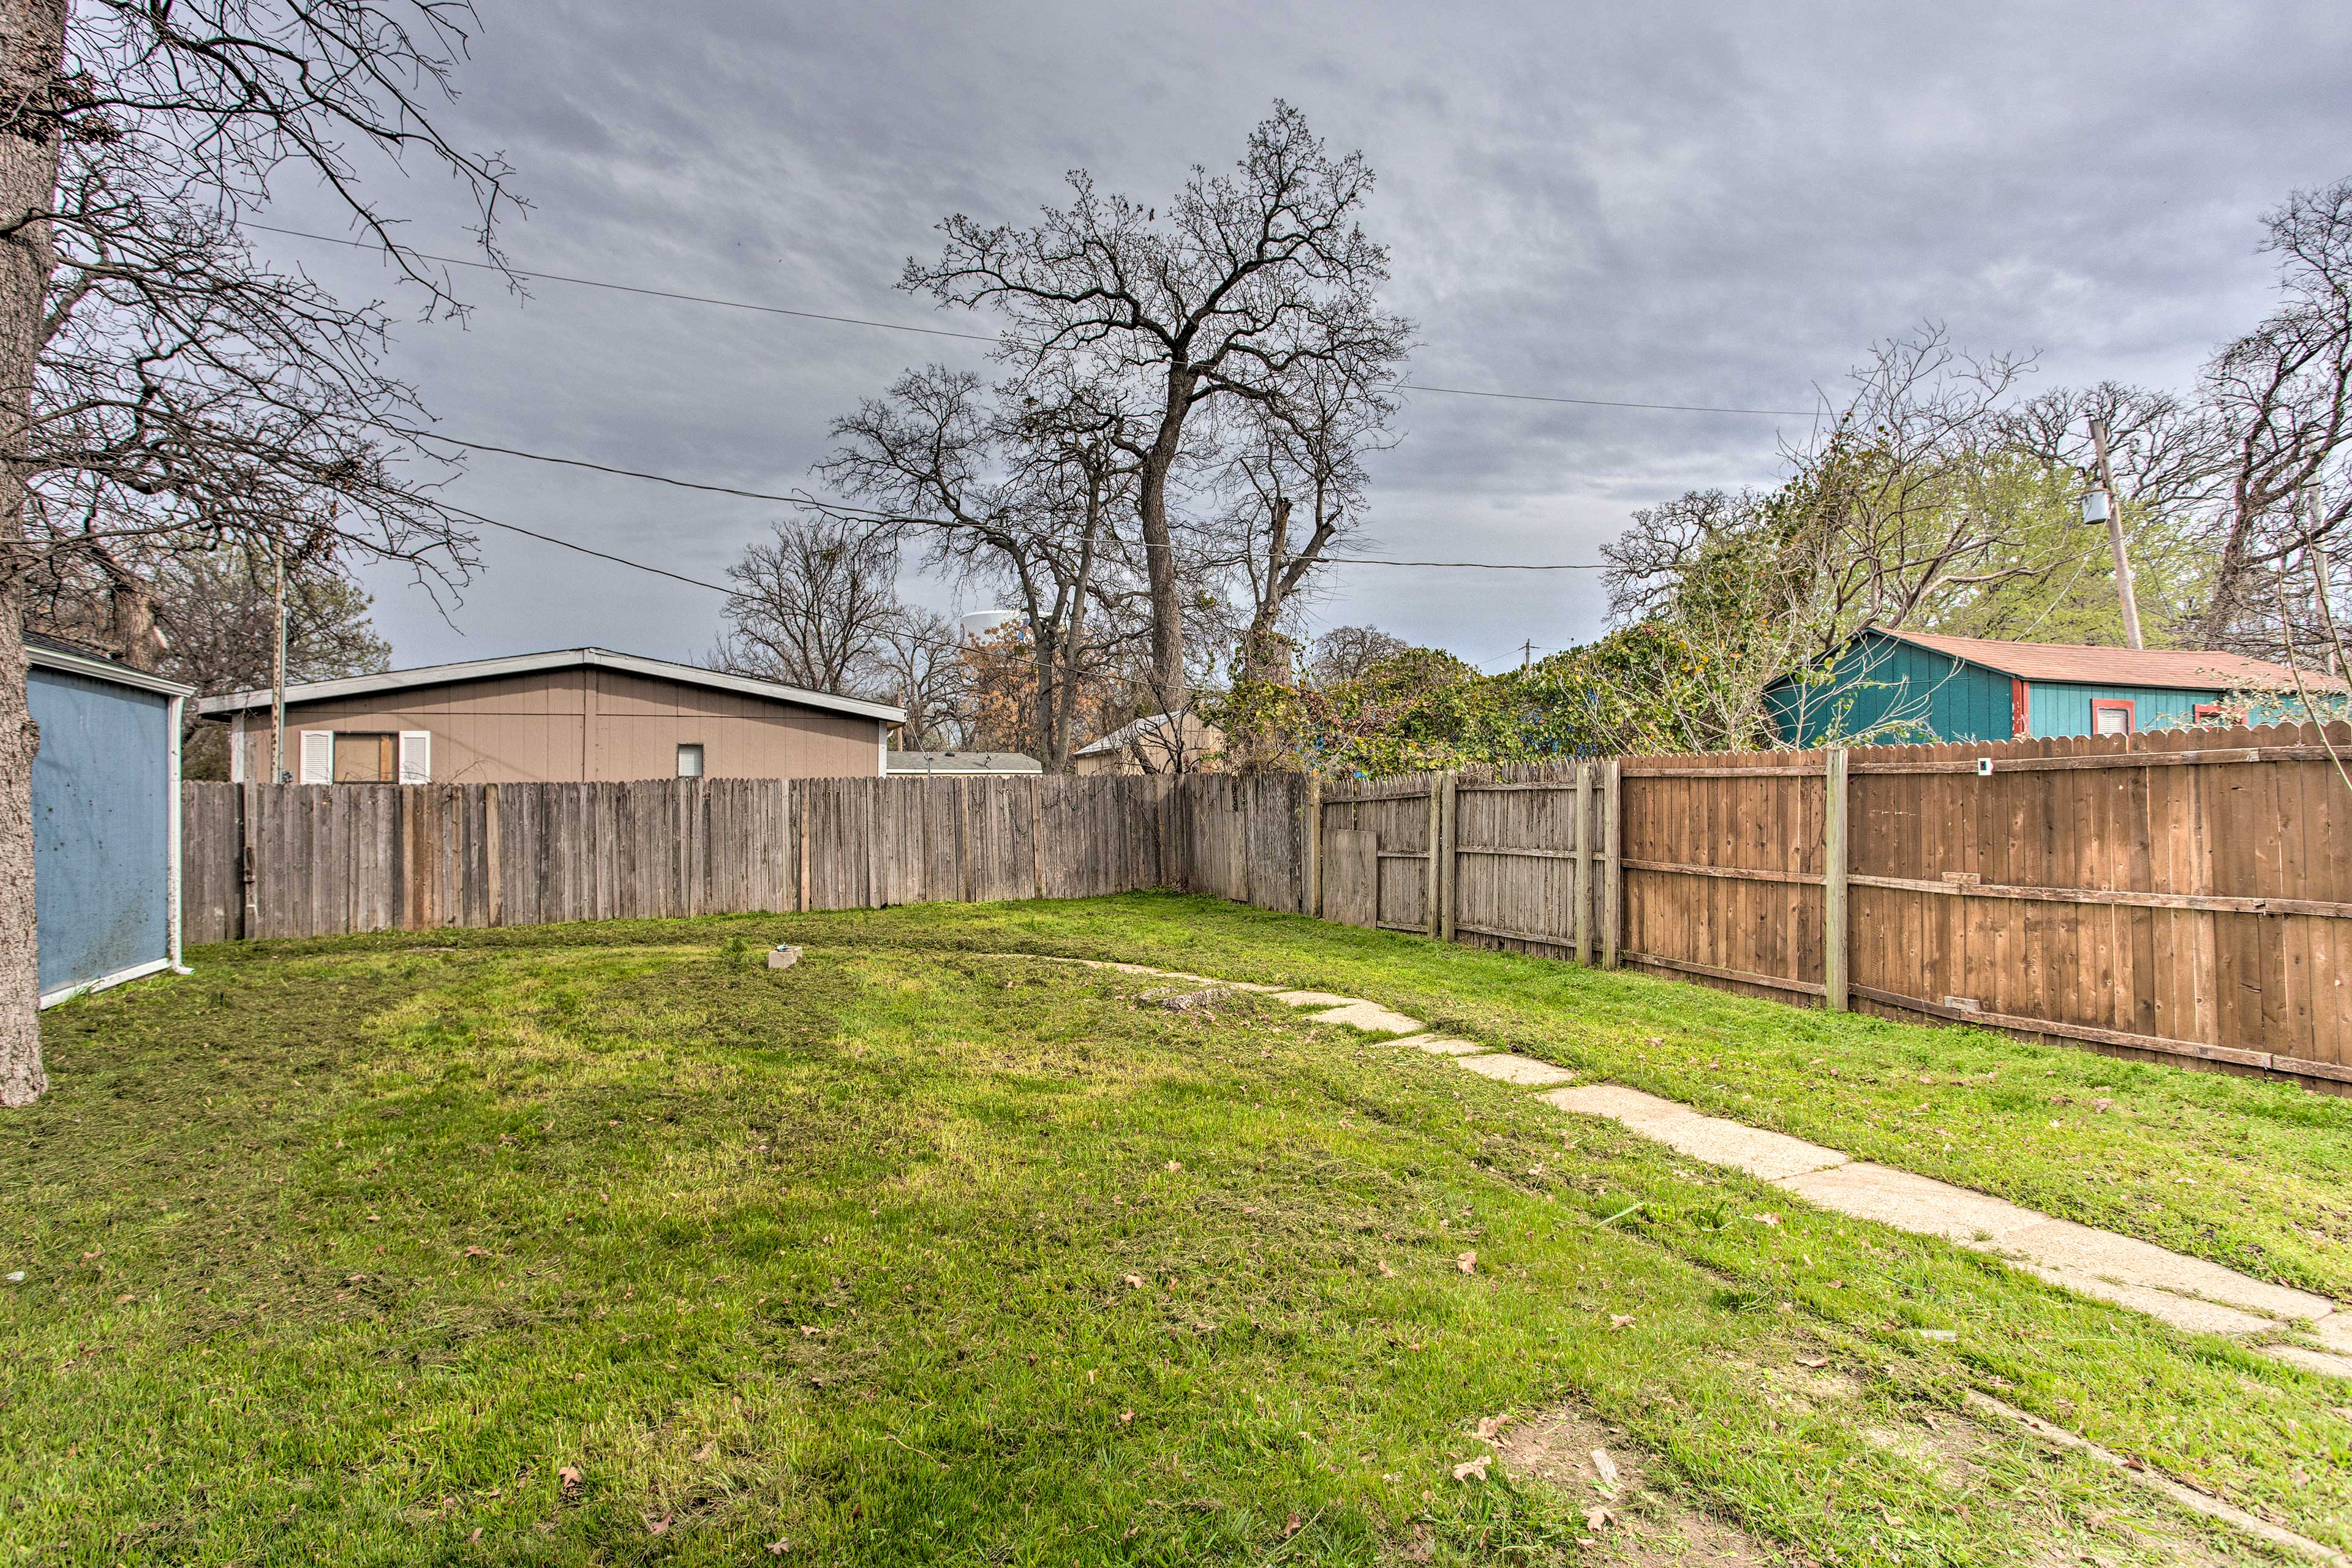 Let the kids frolic in this fenced-in backyard.